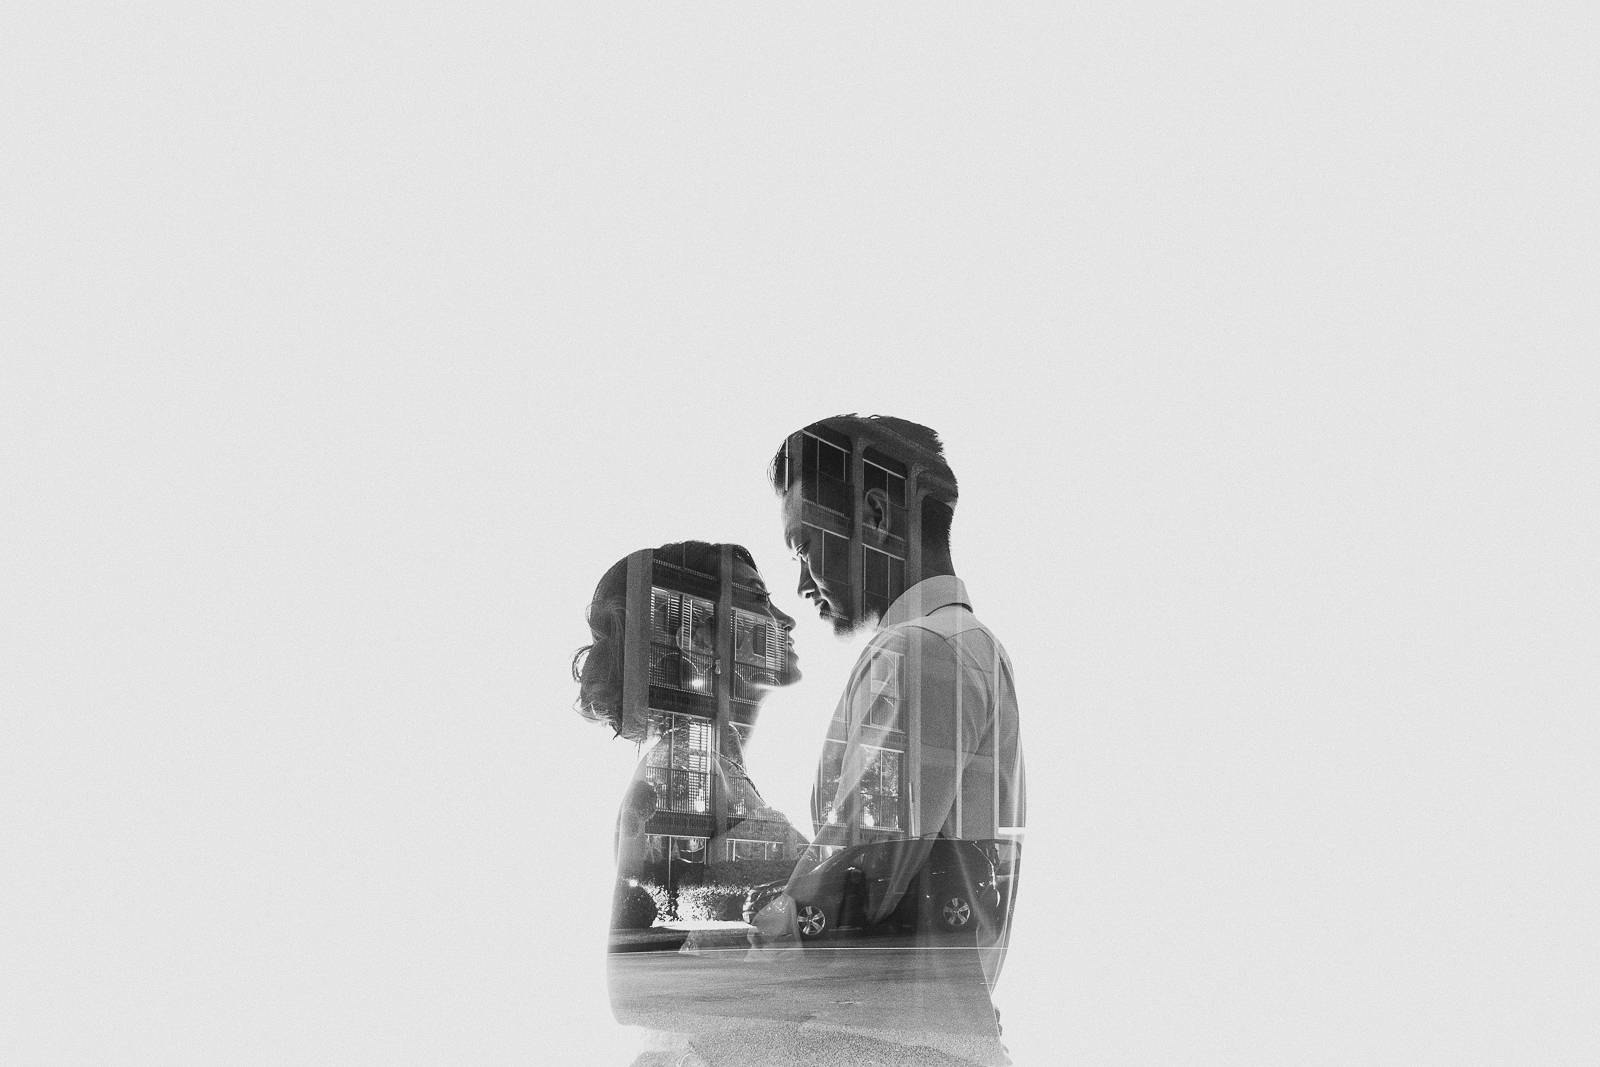 double exposure creative wedding photo